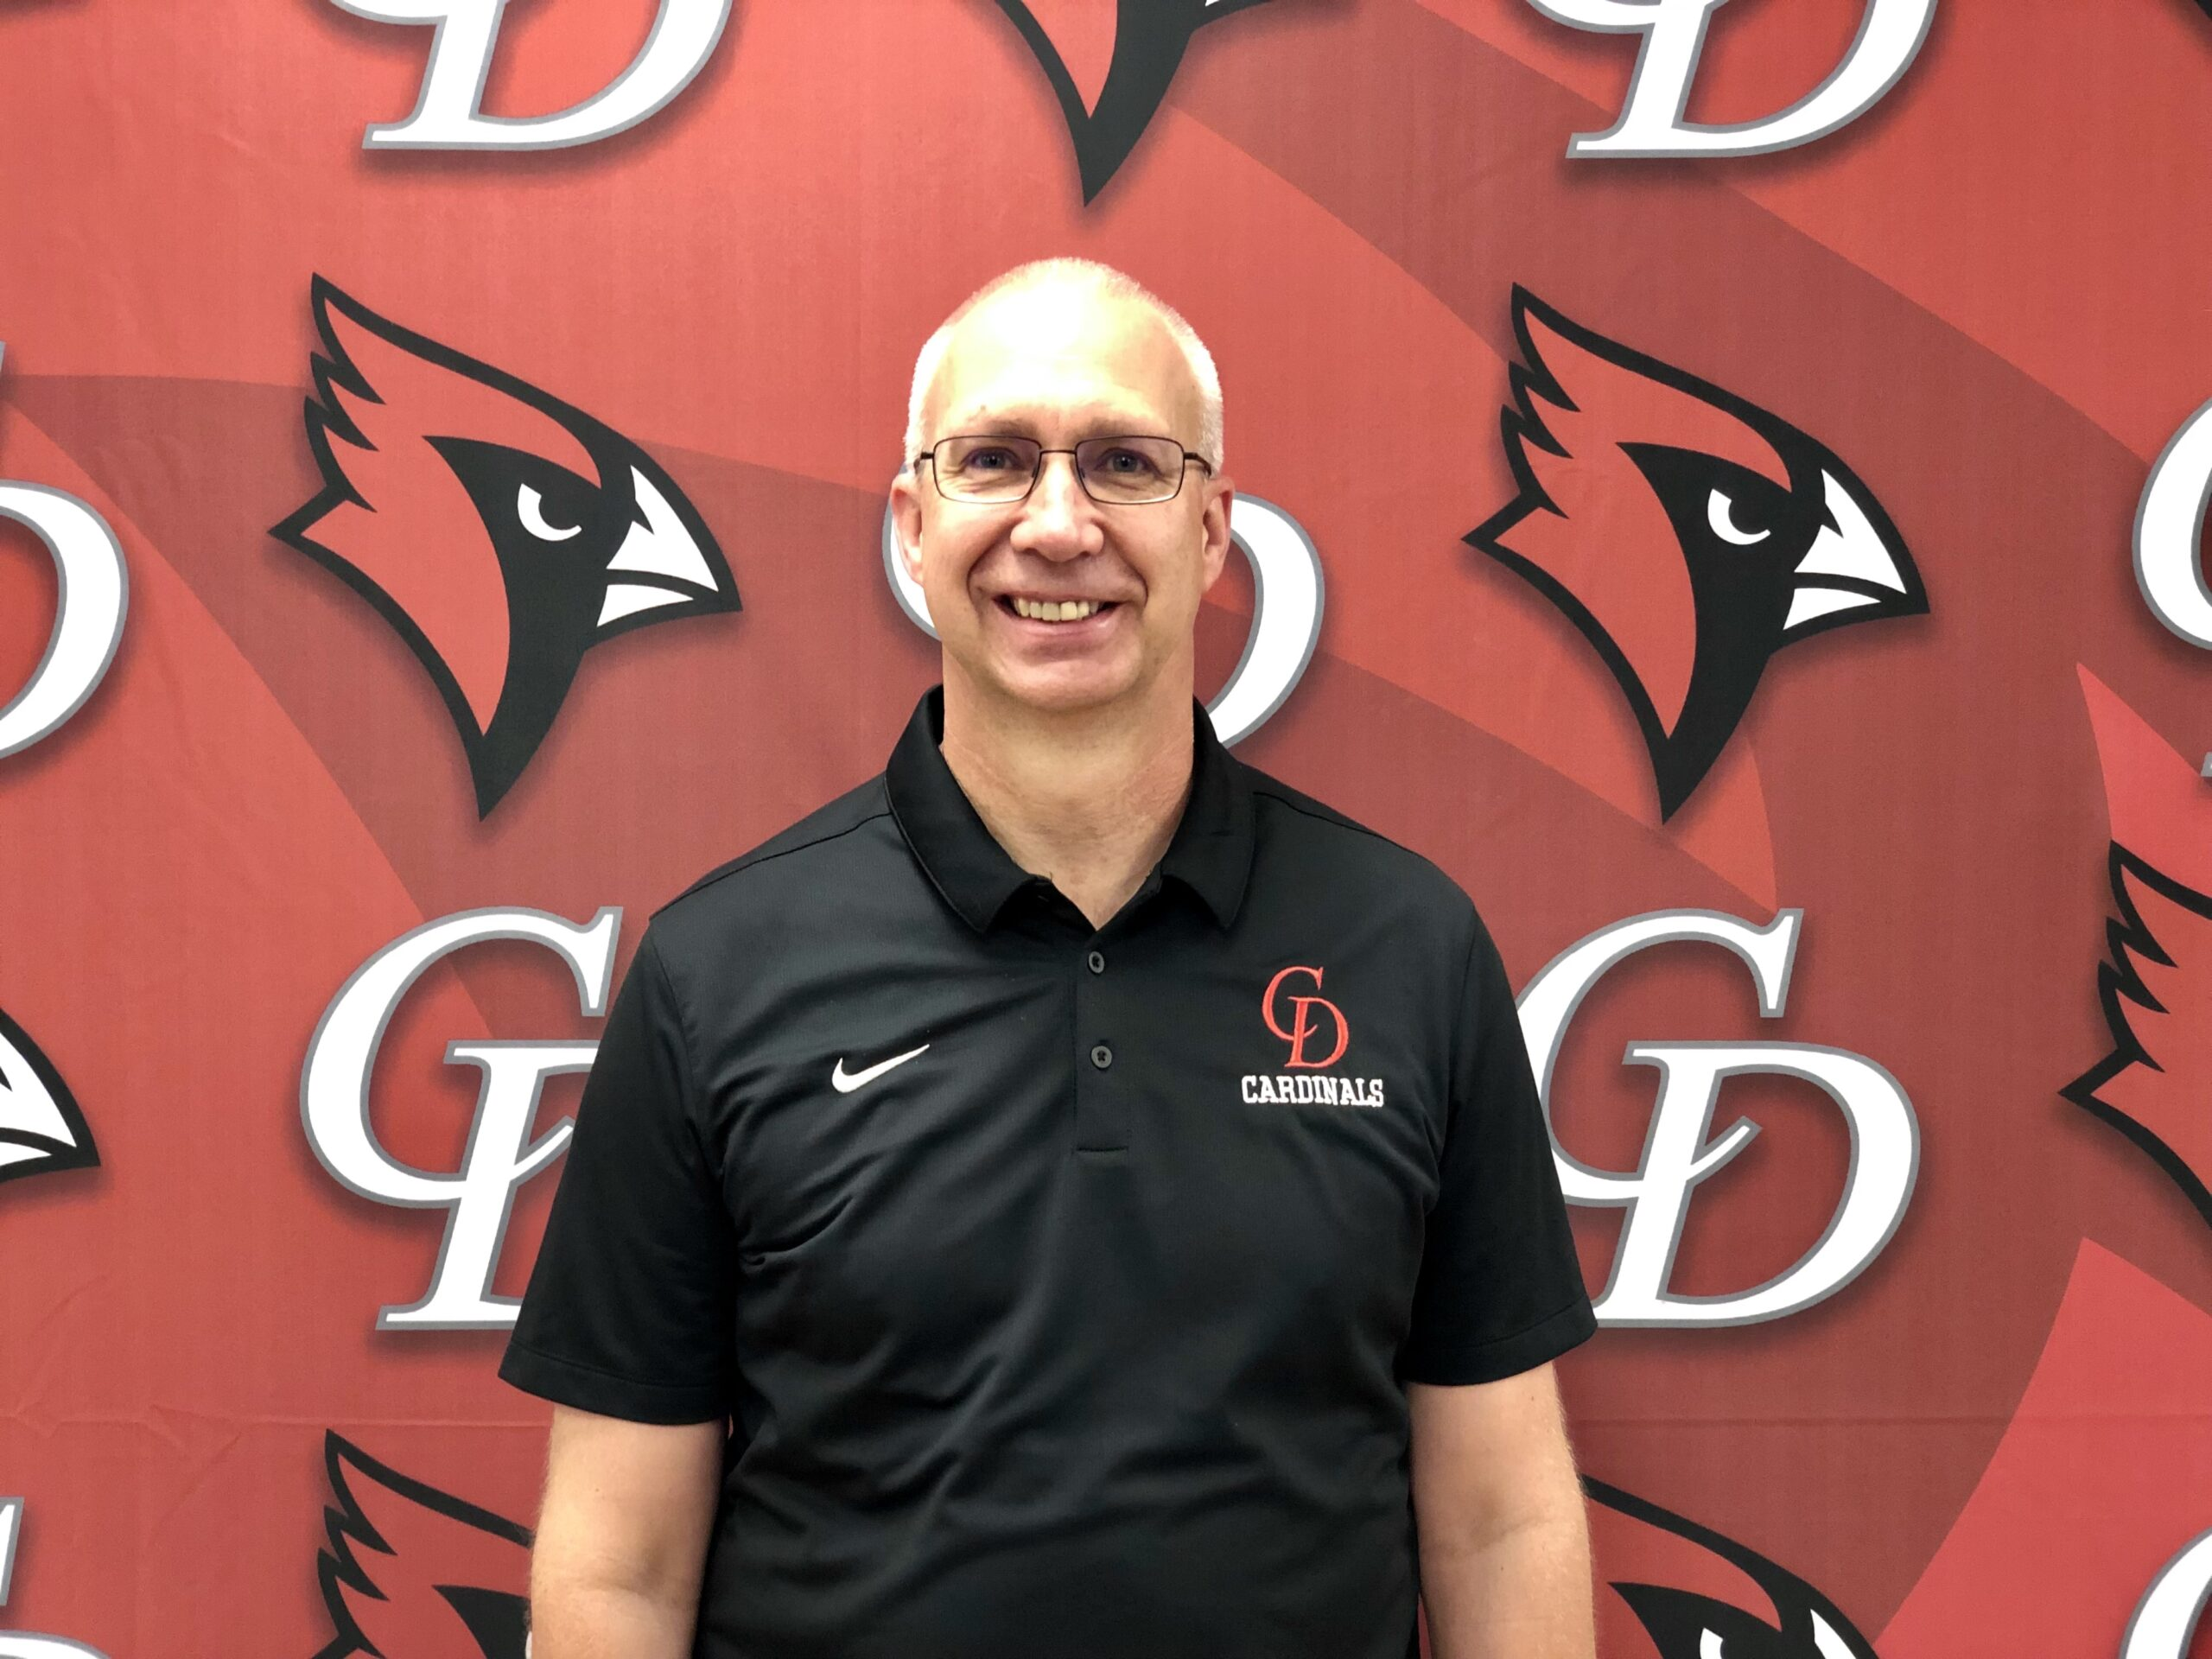 Dan Johnson, new Jr-Sr high principal stands in front of the red Central Decatur Cardinal logo.